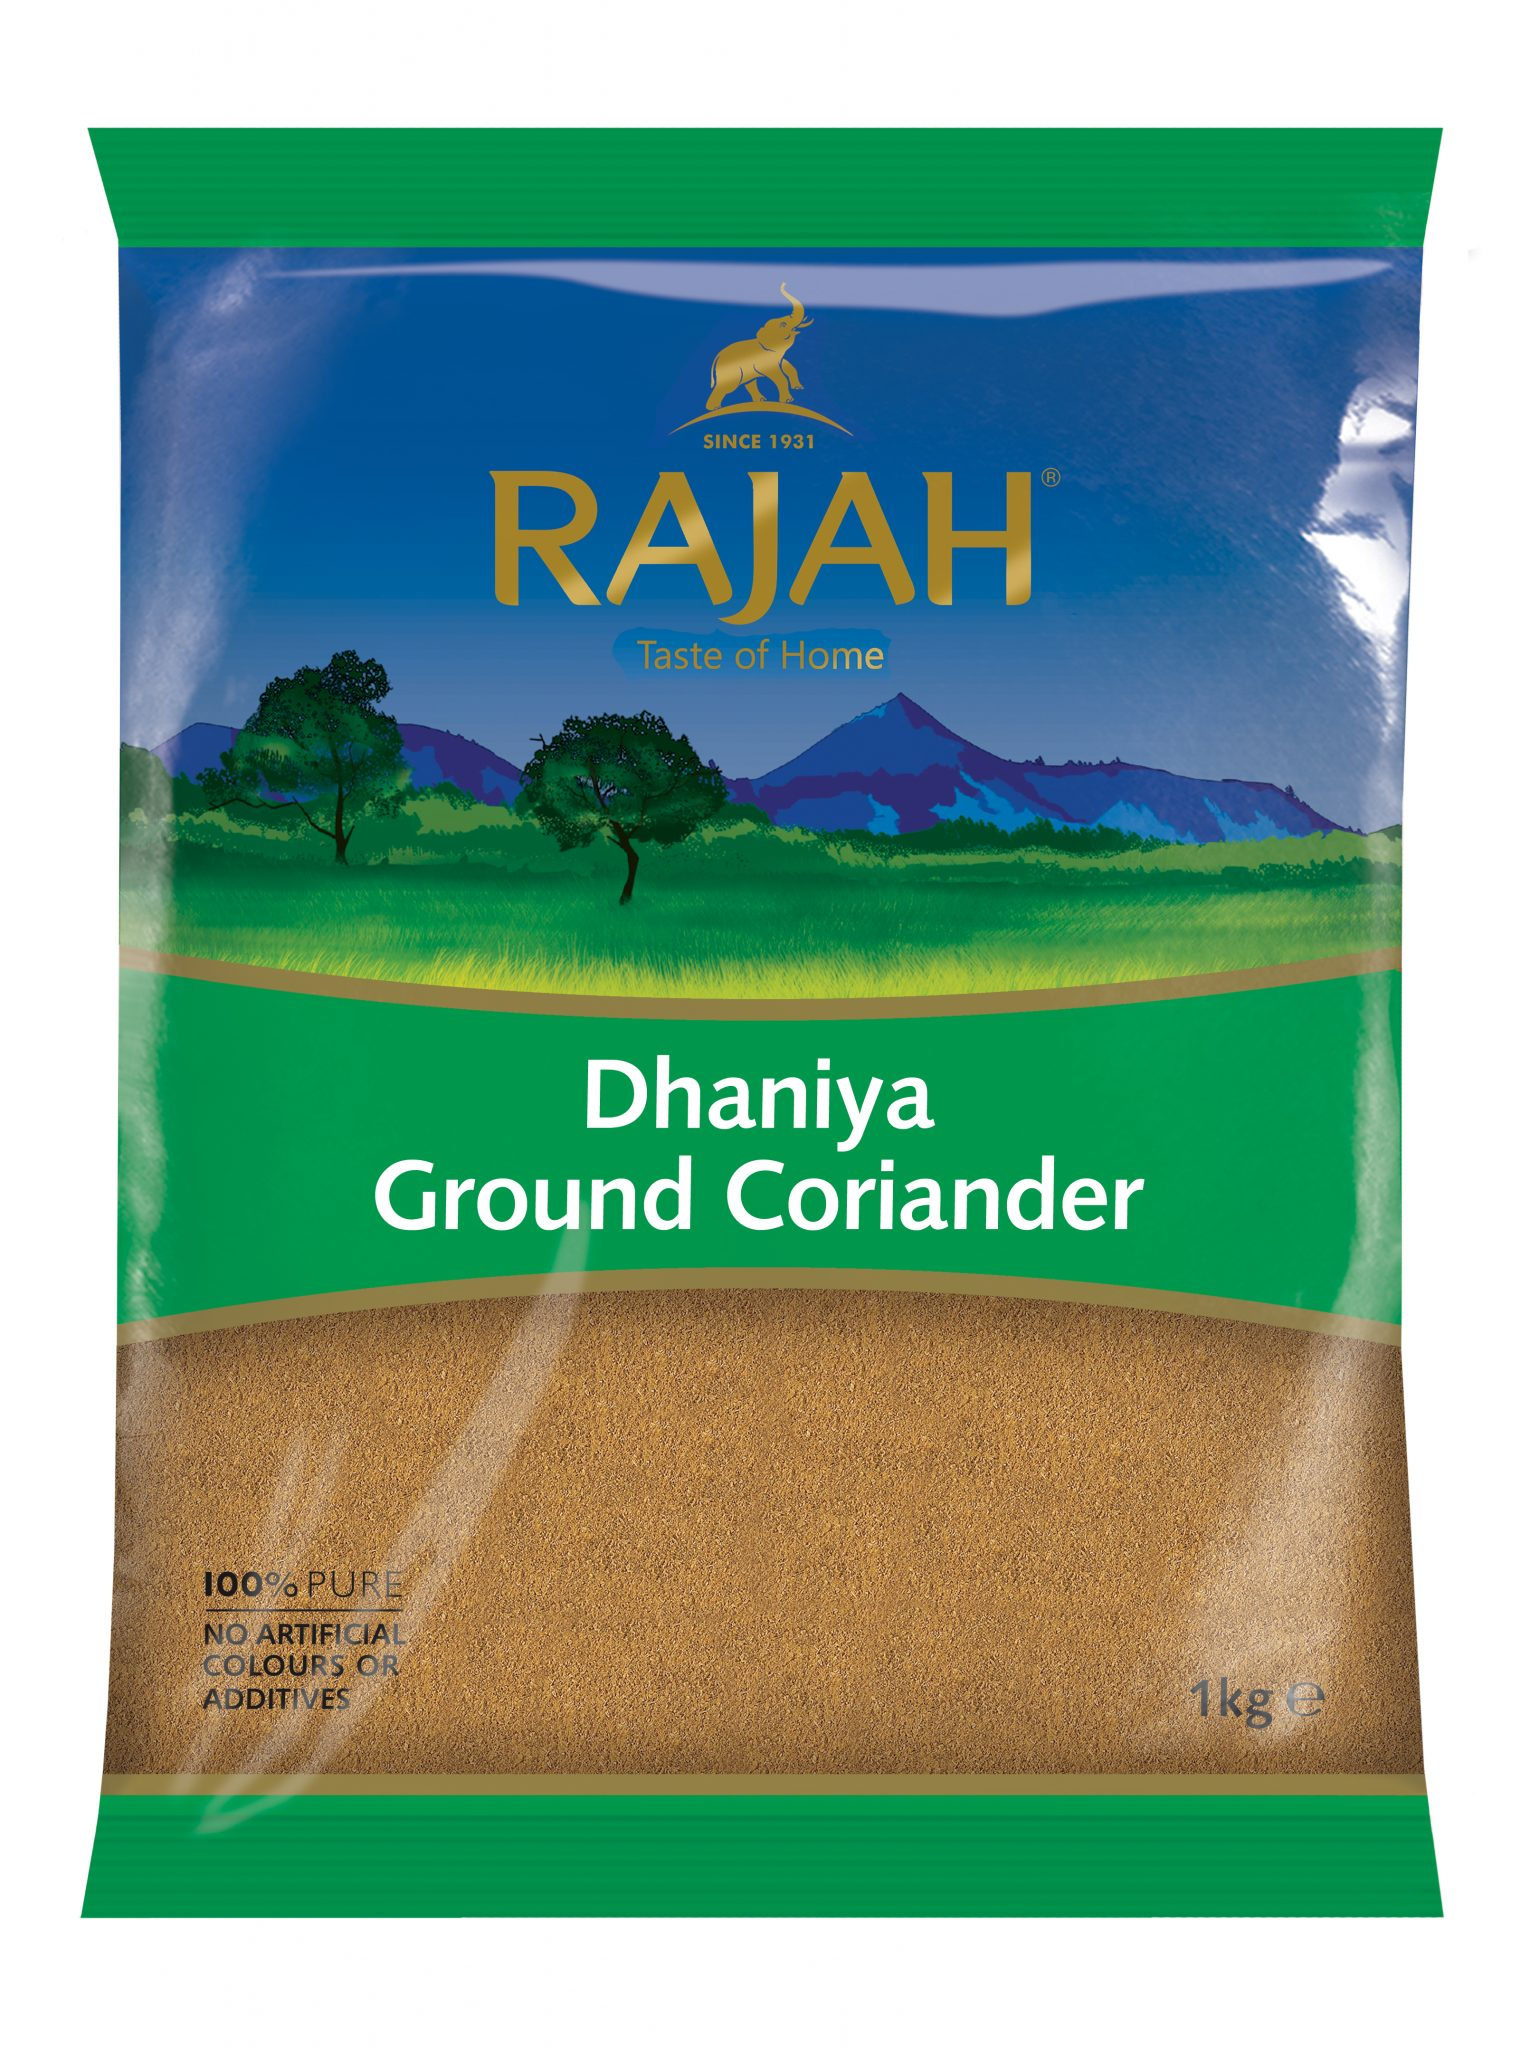 Rajah Dhaniyah Ground Coriander